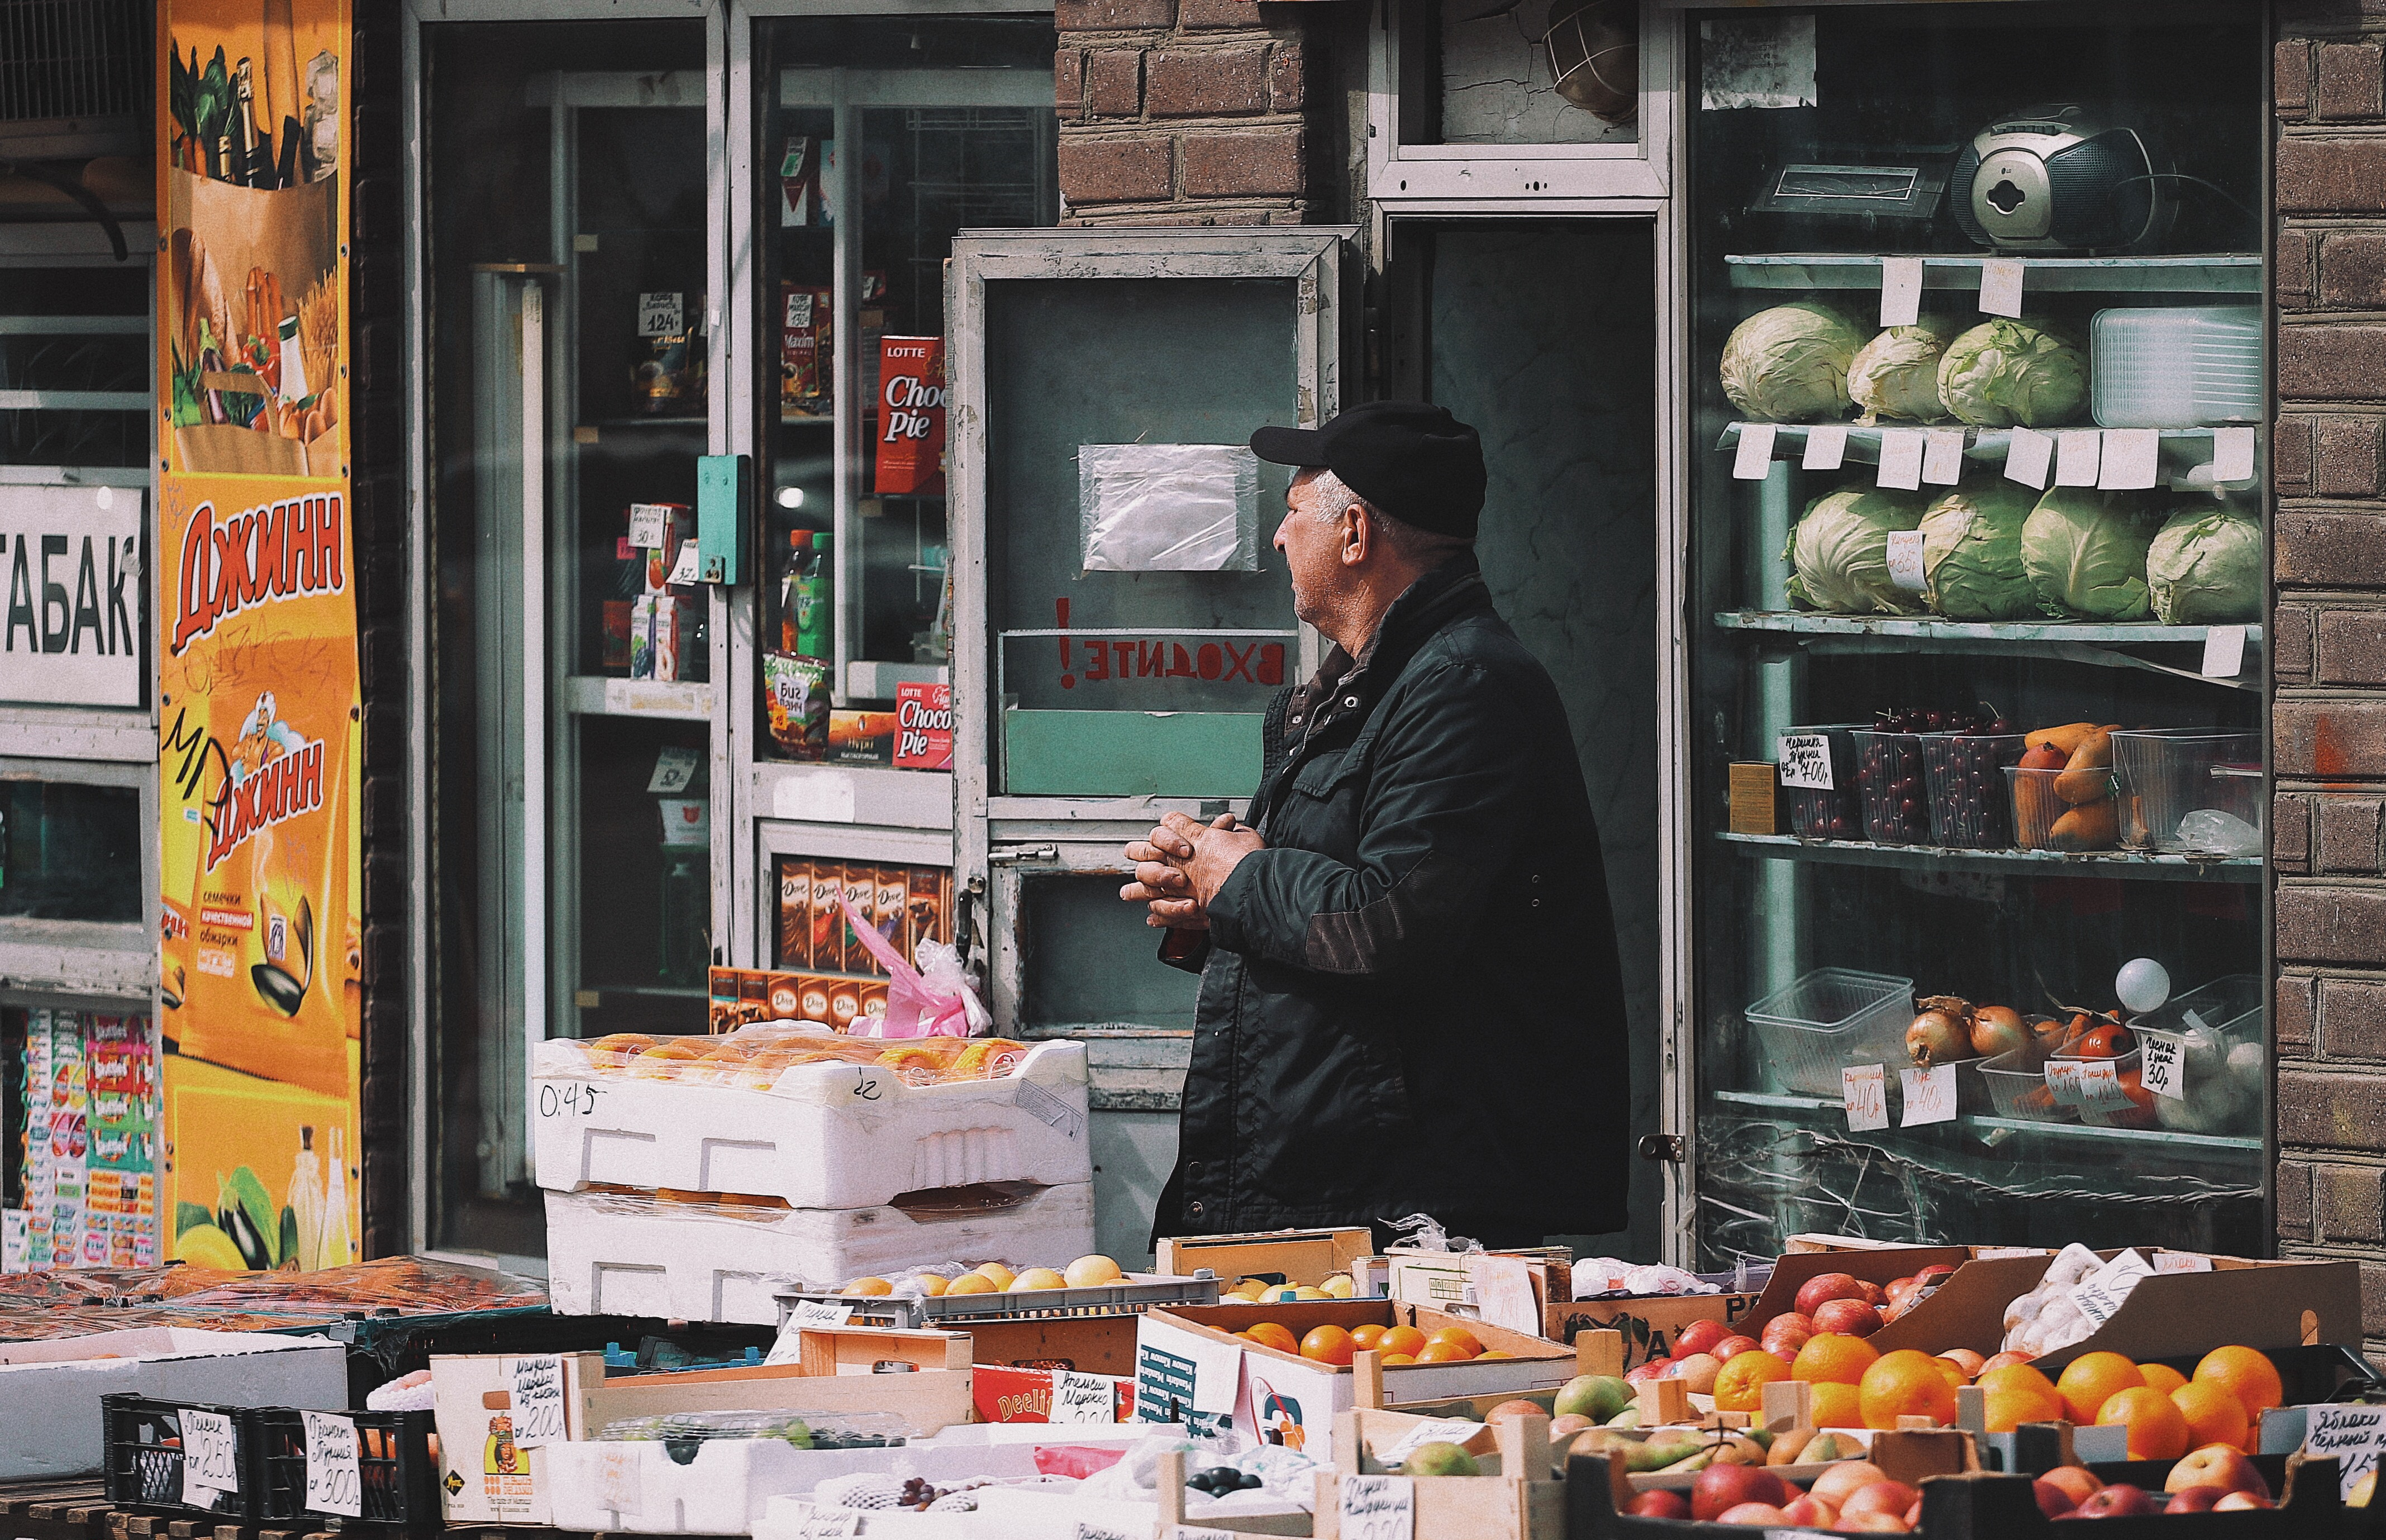 Understand different faces of poverty and social exclusion in old age